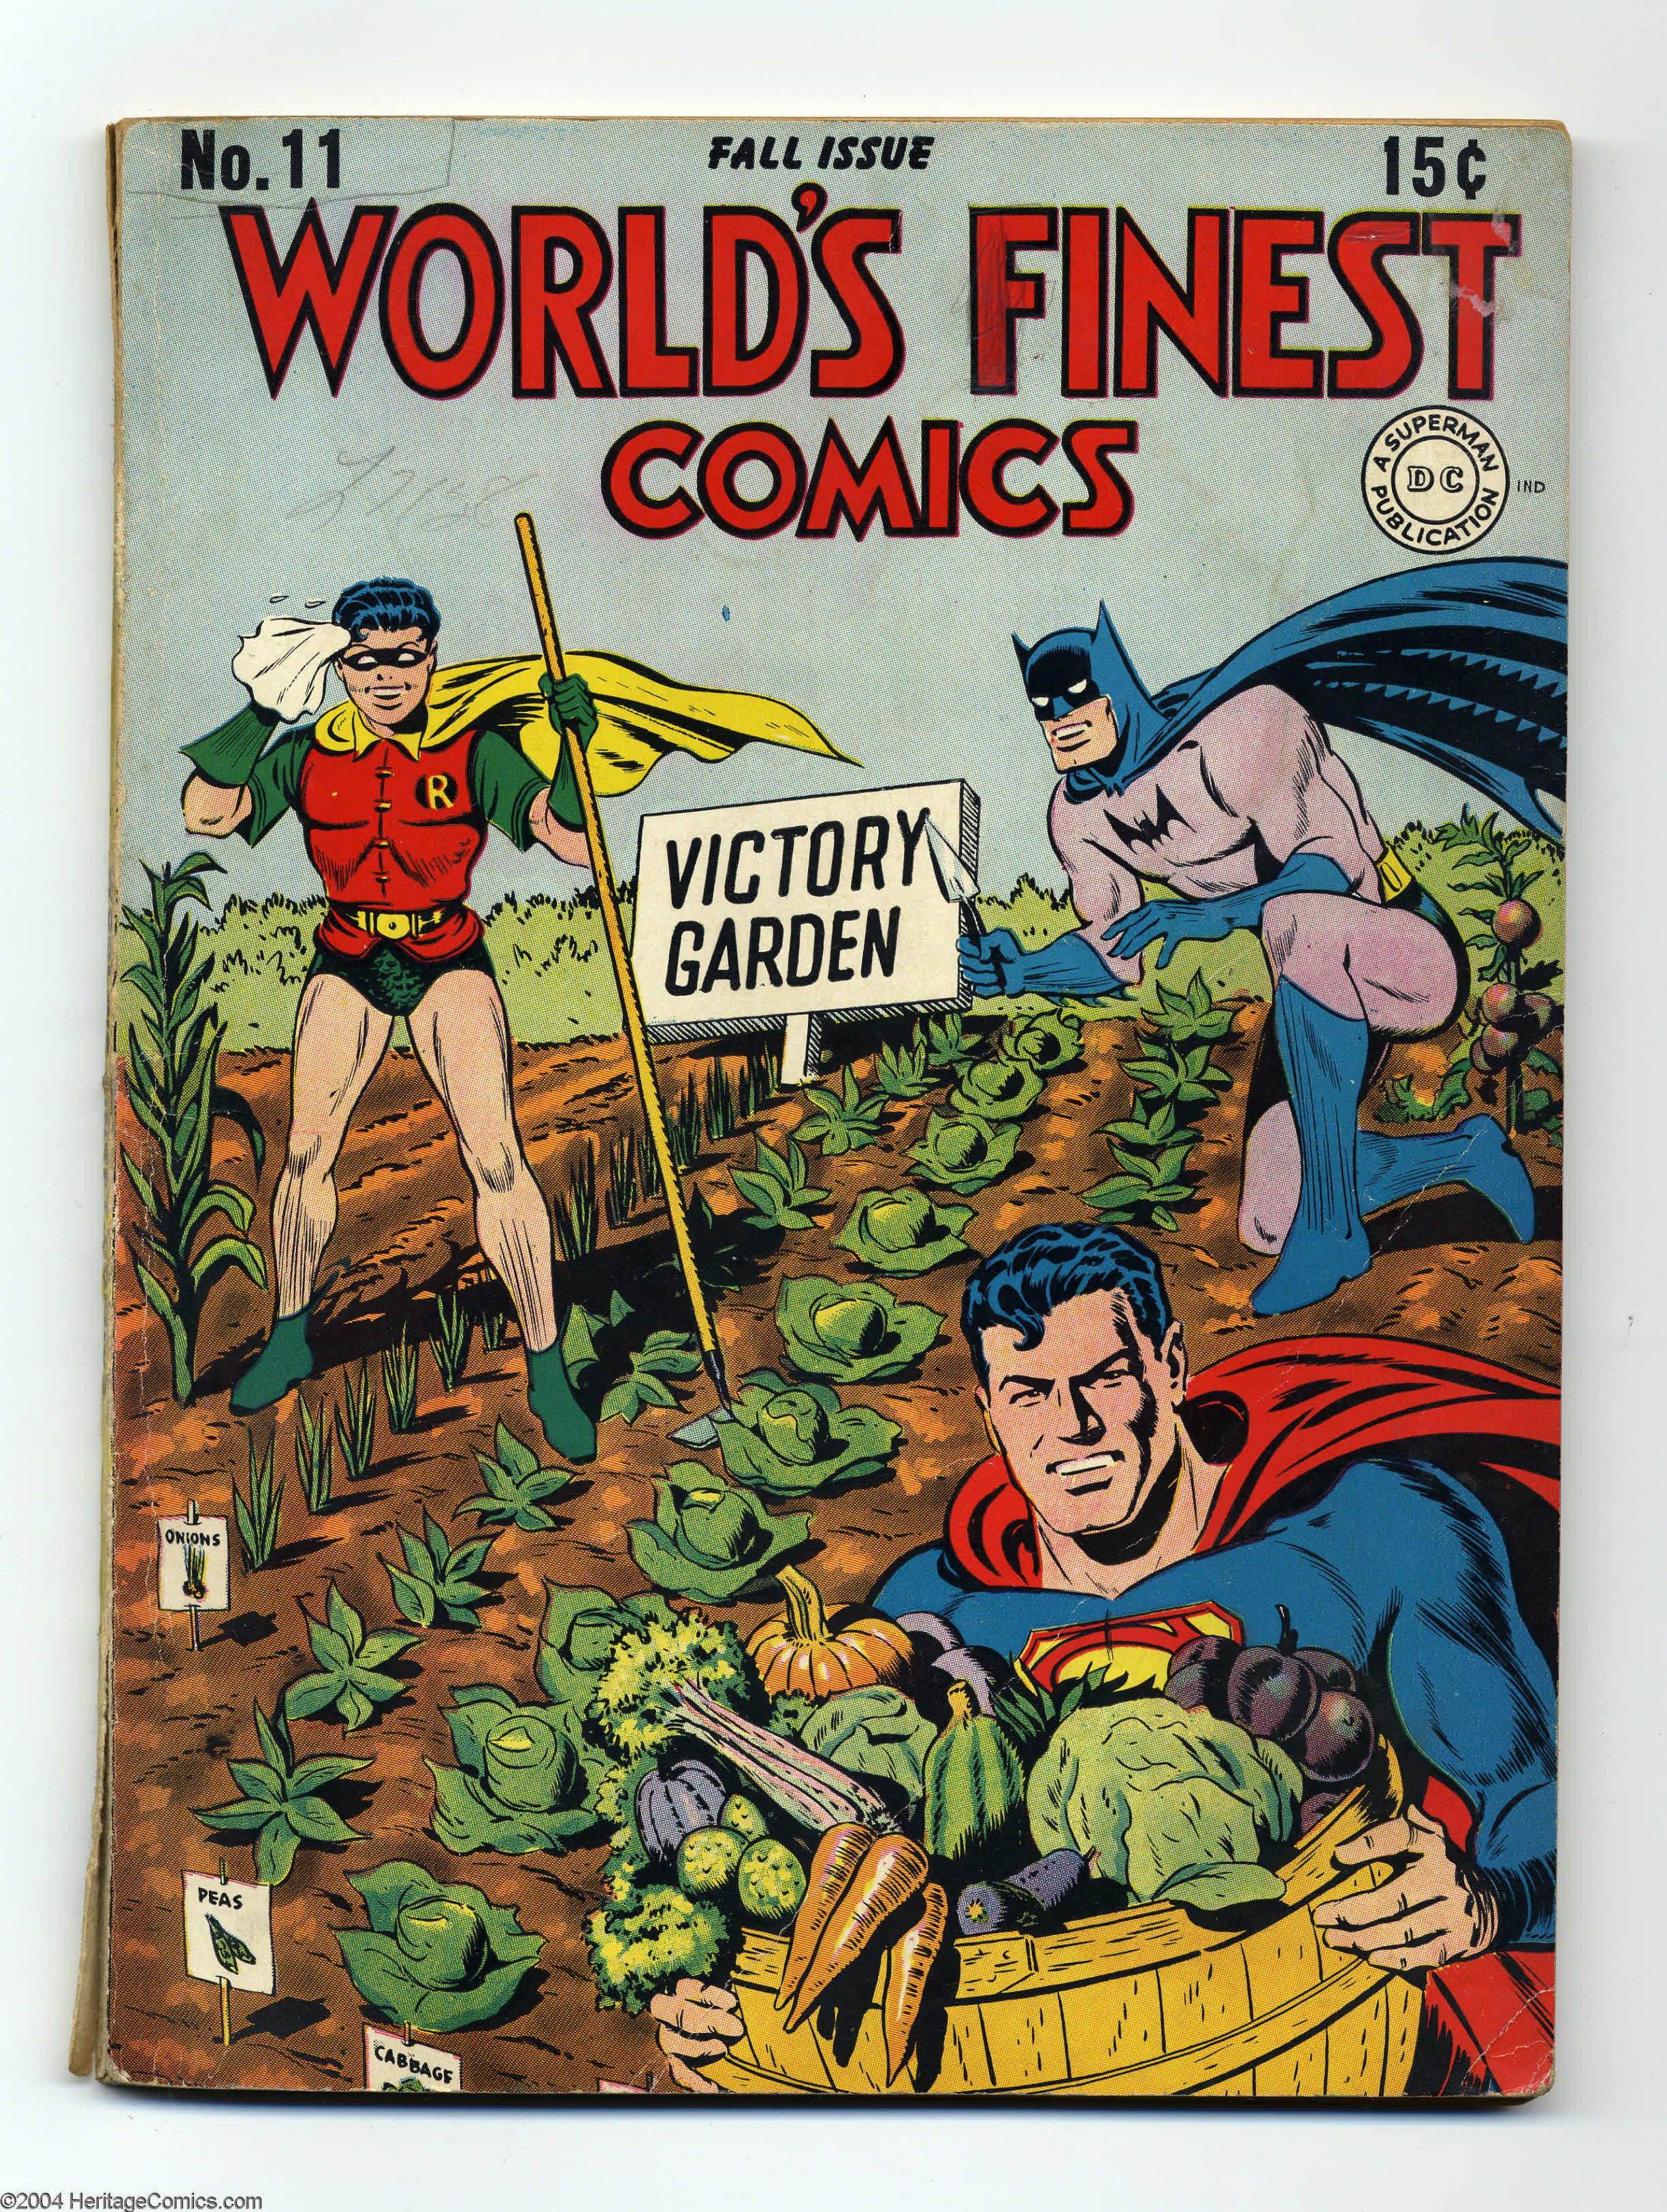 1943 - Before our comic book heroes\' values were replaced with ...